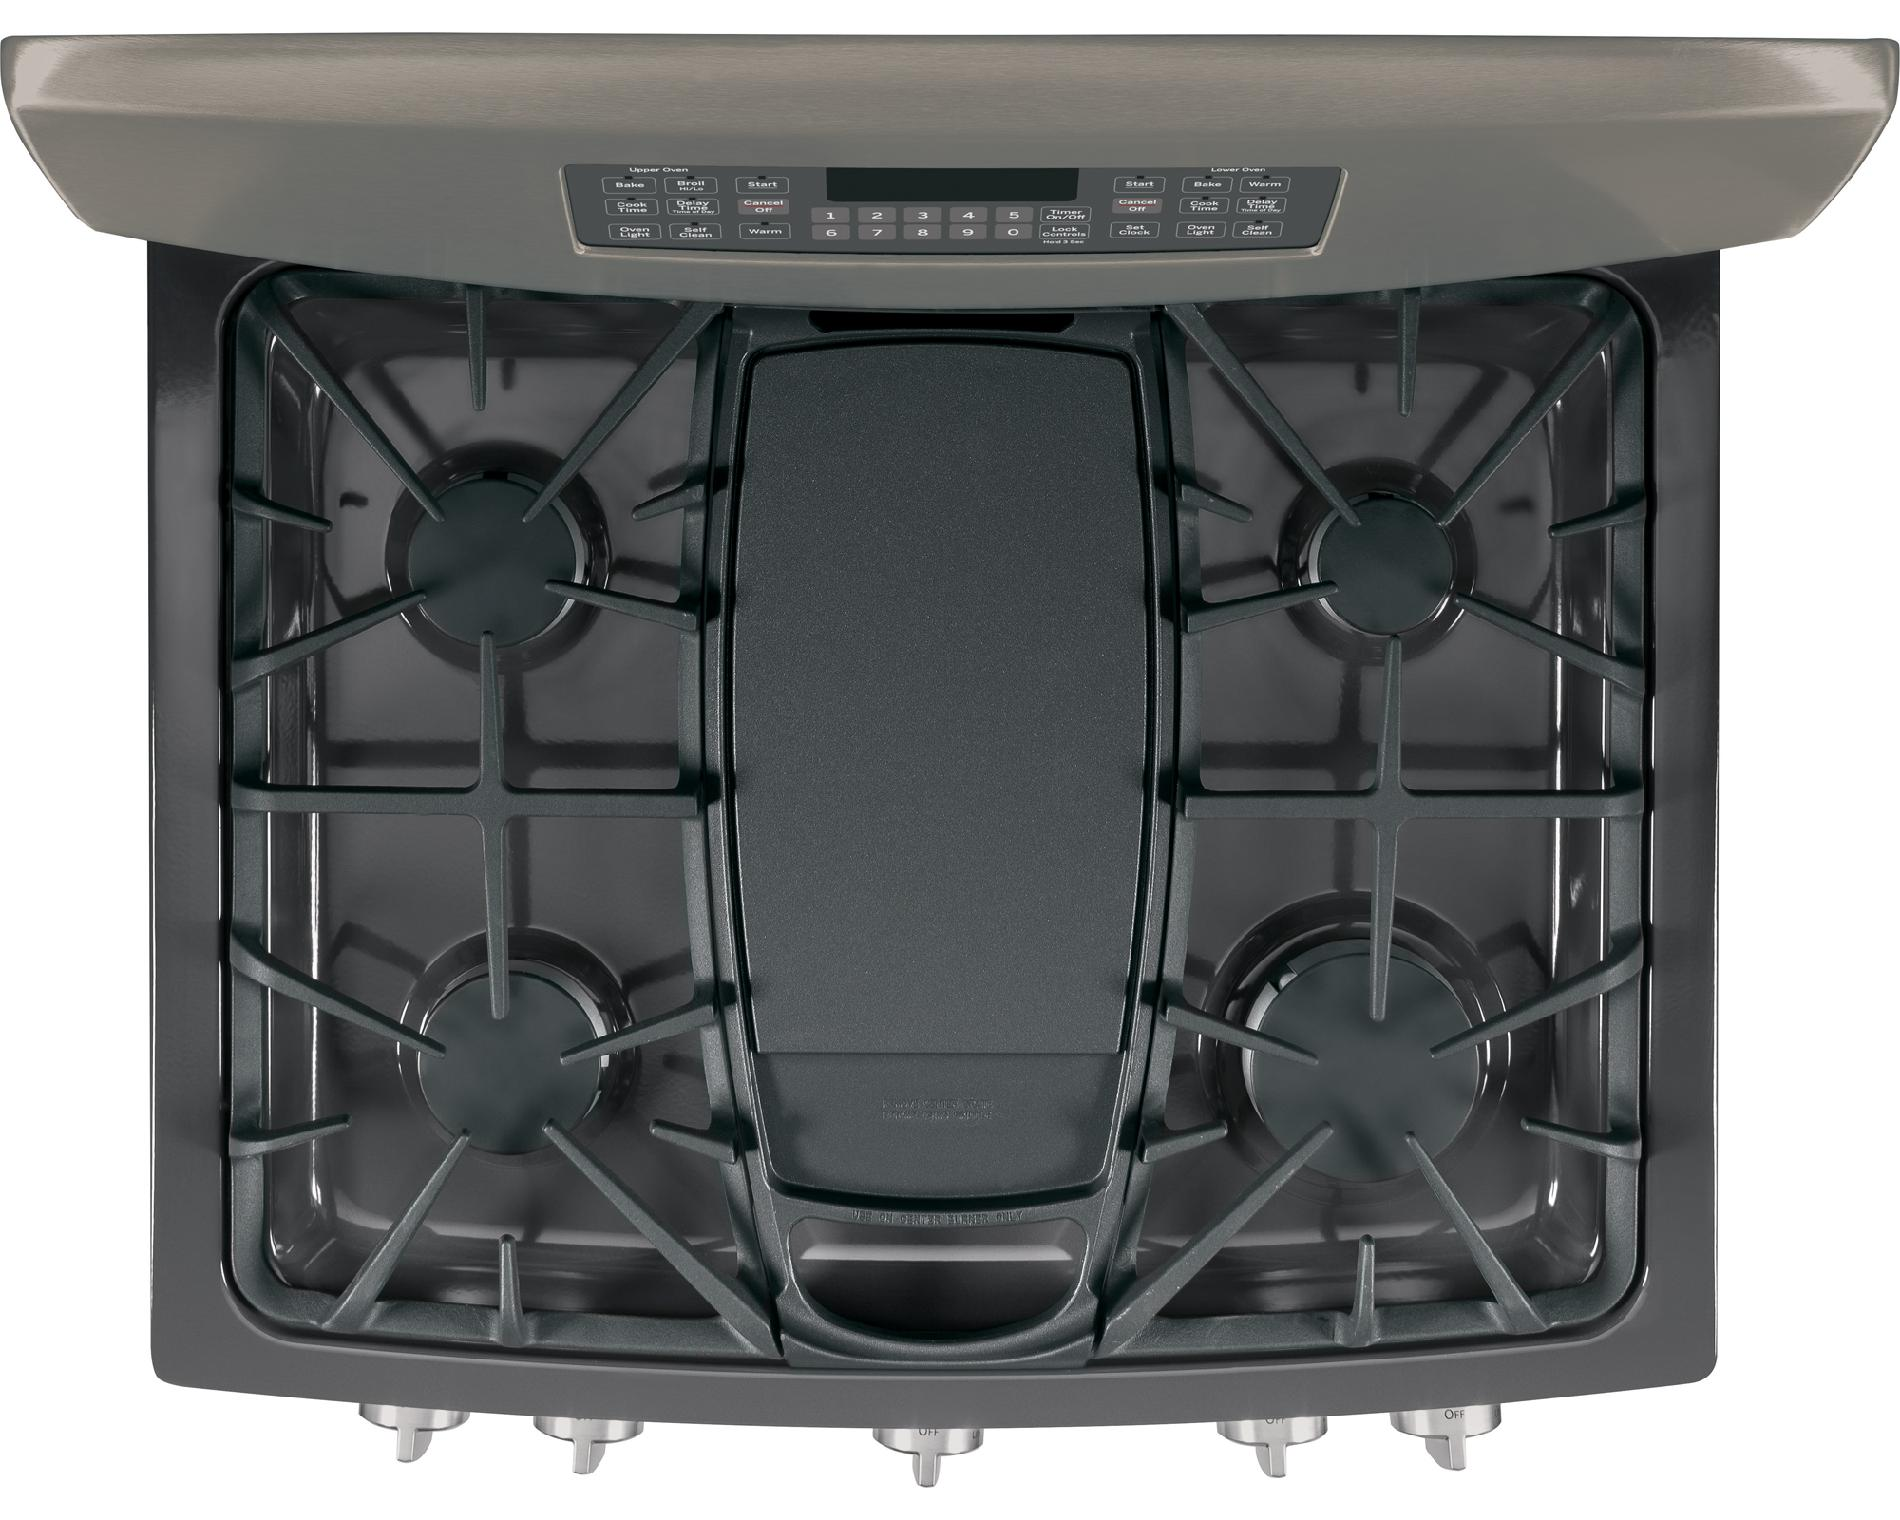 GE Appliances 6.8 cu. ft. Gas Range w/ Double Oven - Slate